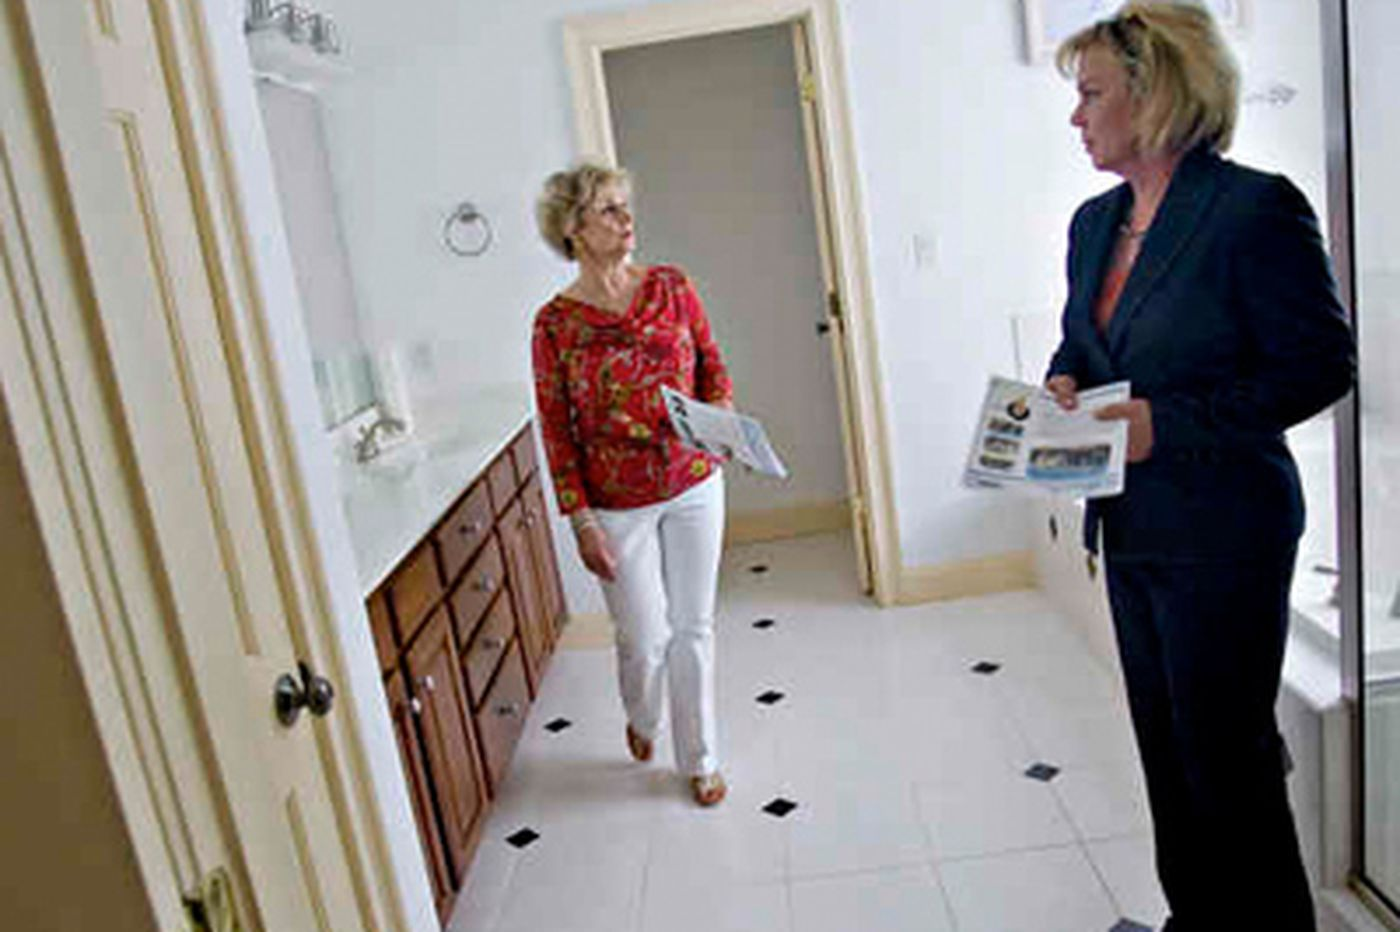 First-timer, boomers feel housing downturn most